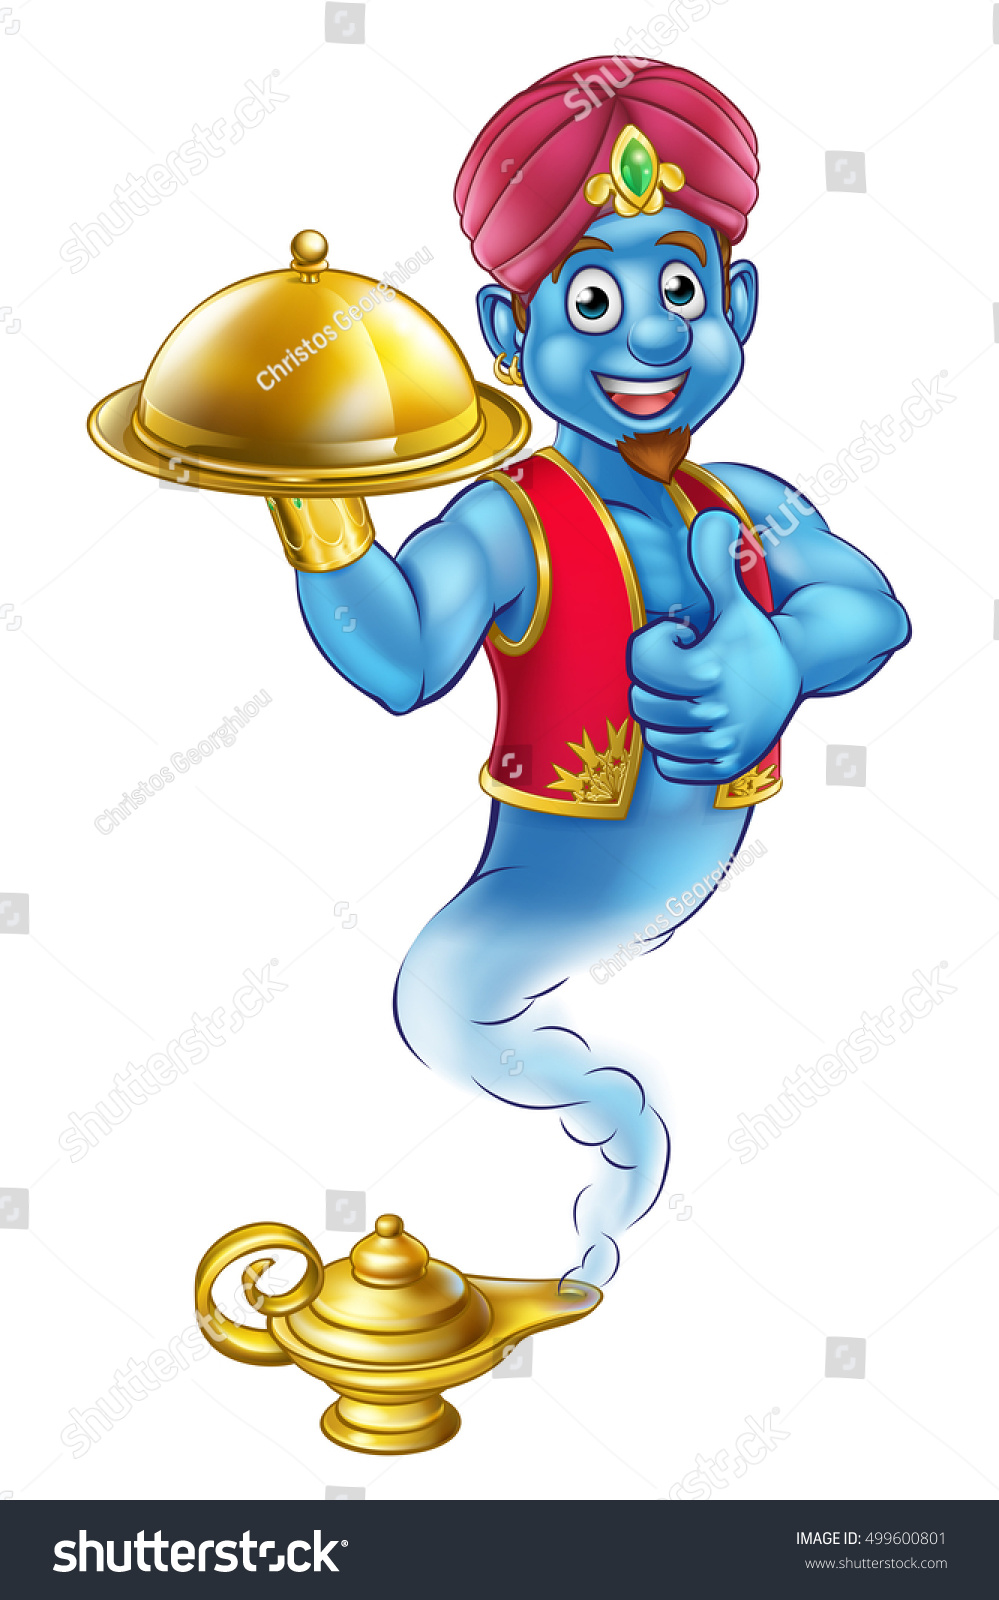 Cartoon Genie Like Story Aladdin Coming Stock Illustration 499600801 ... for genie coming out of lamp aladdin  59nar